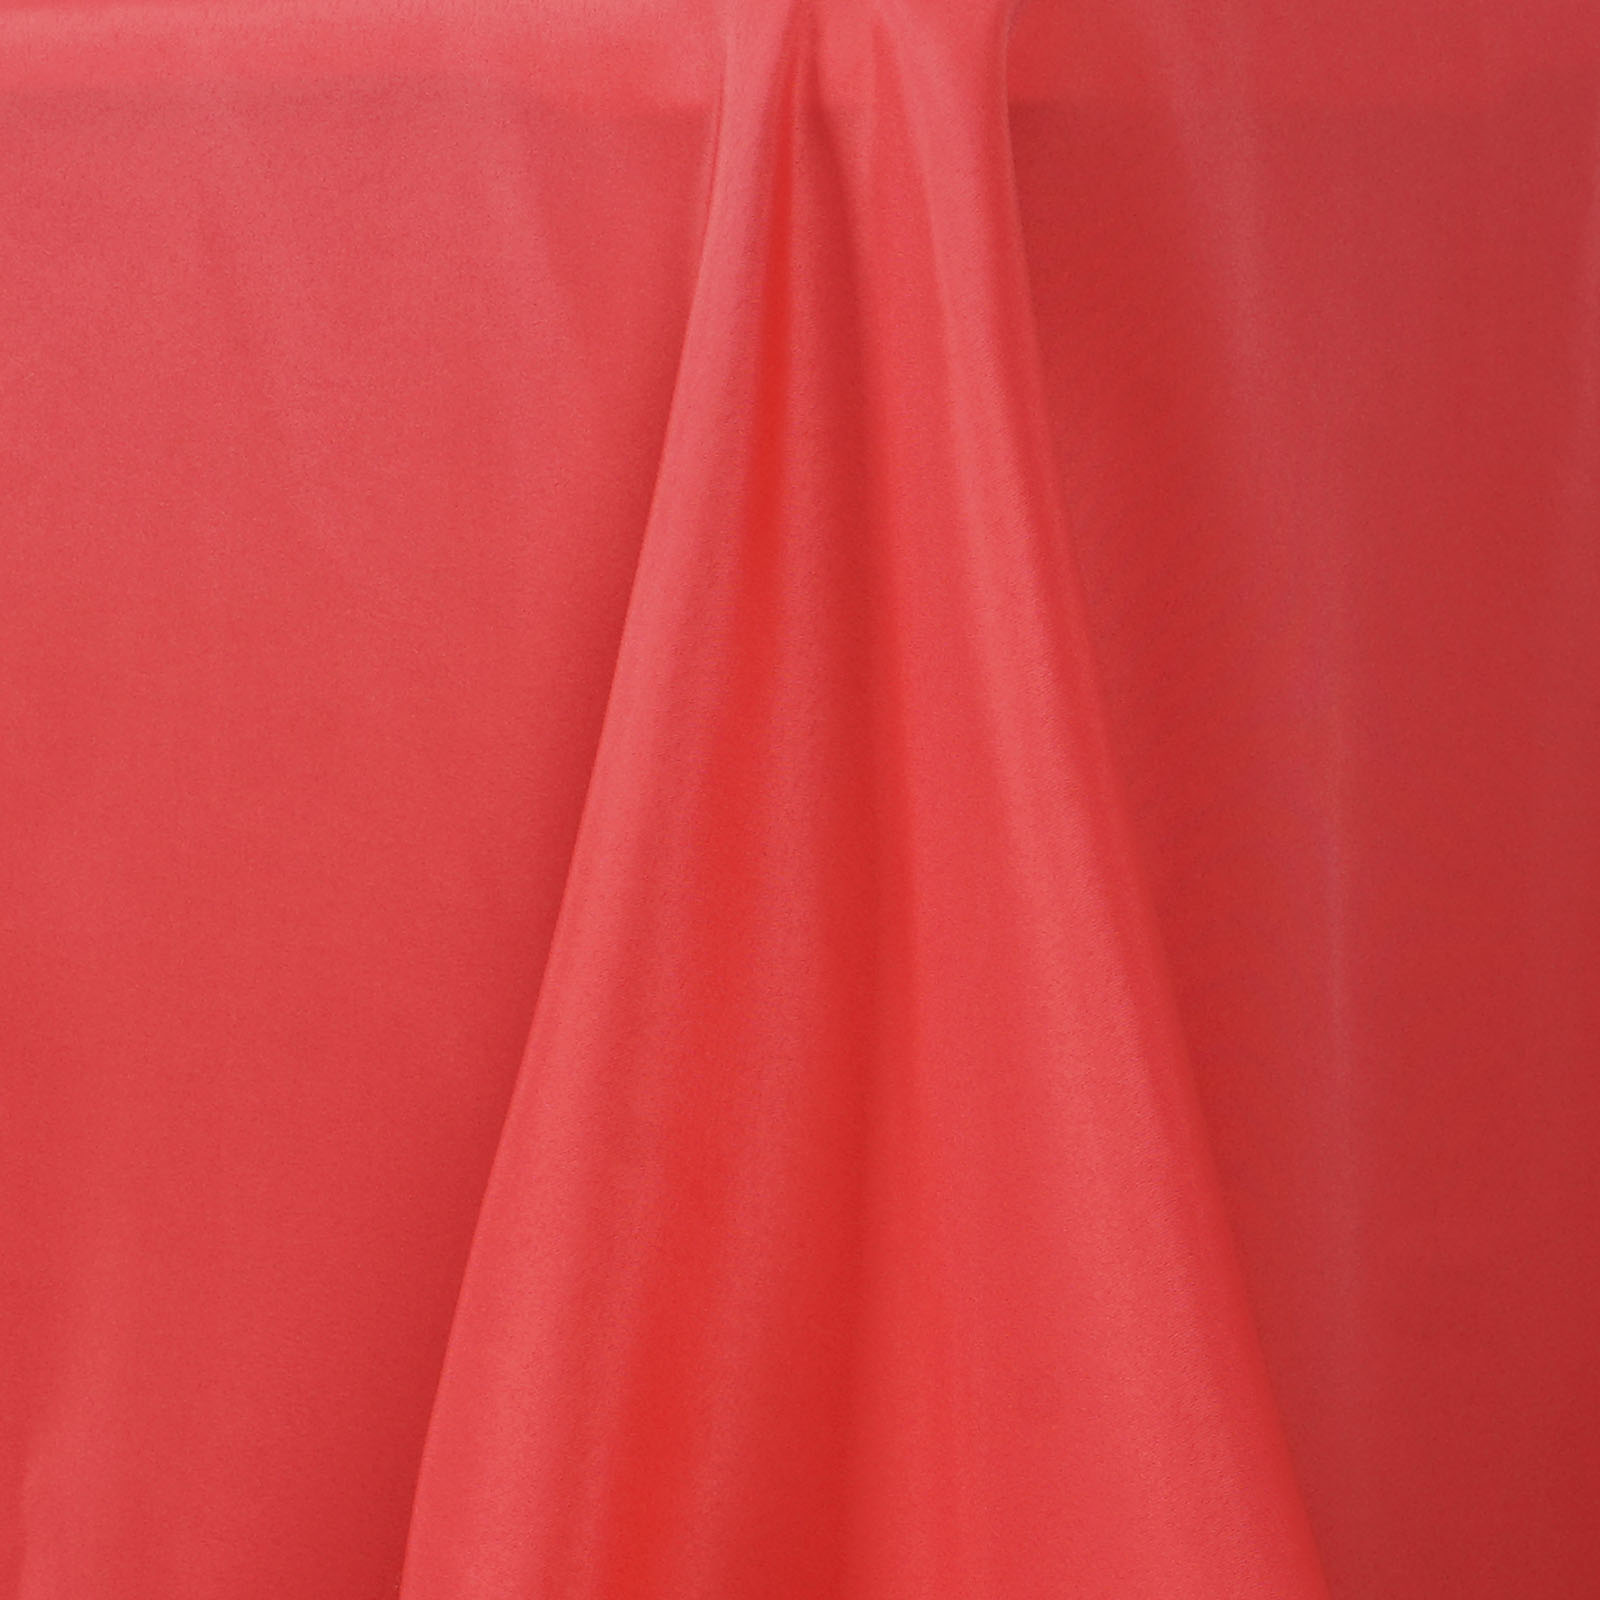 90x156-034-Polyester-Rectangle-Tablecloths-For-Wedding-Party-Banquet-Events thumbnail 16